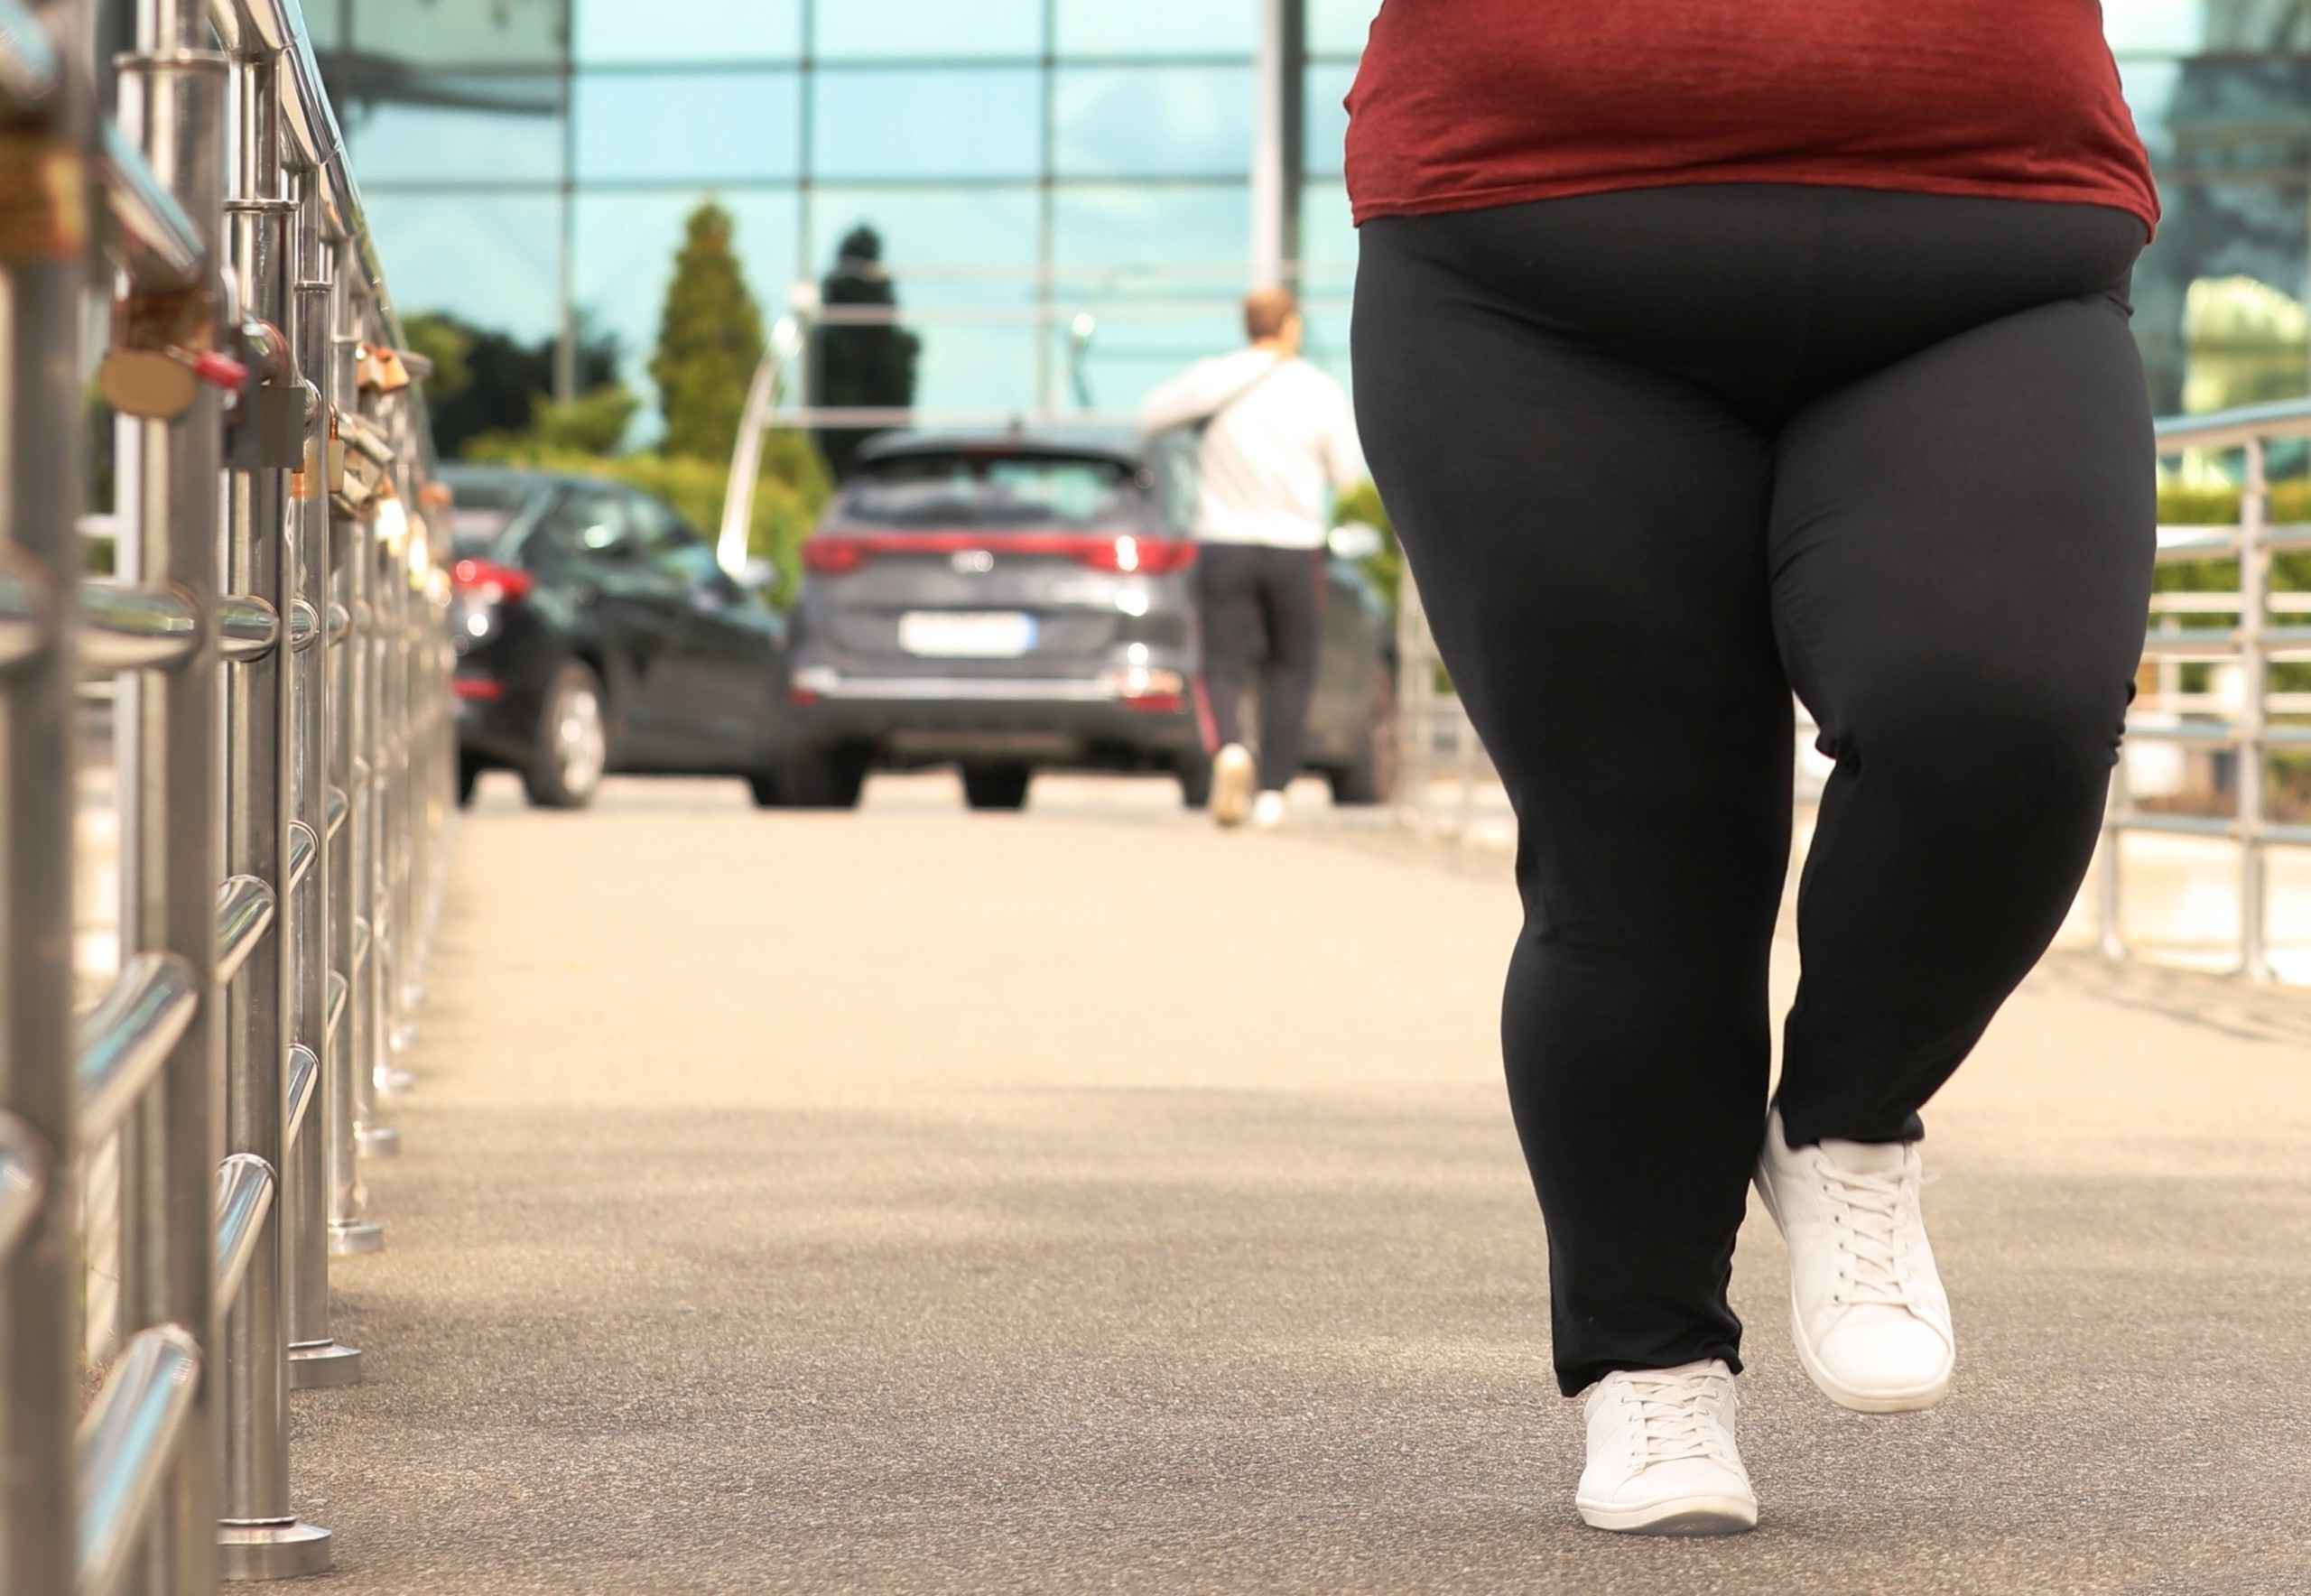 How Fast Can Morbidly Obese Influencers Move?